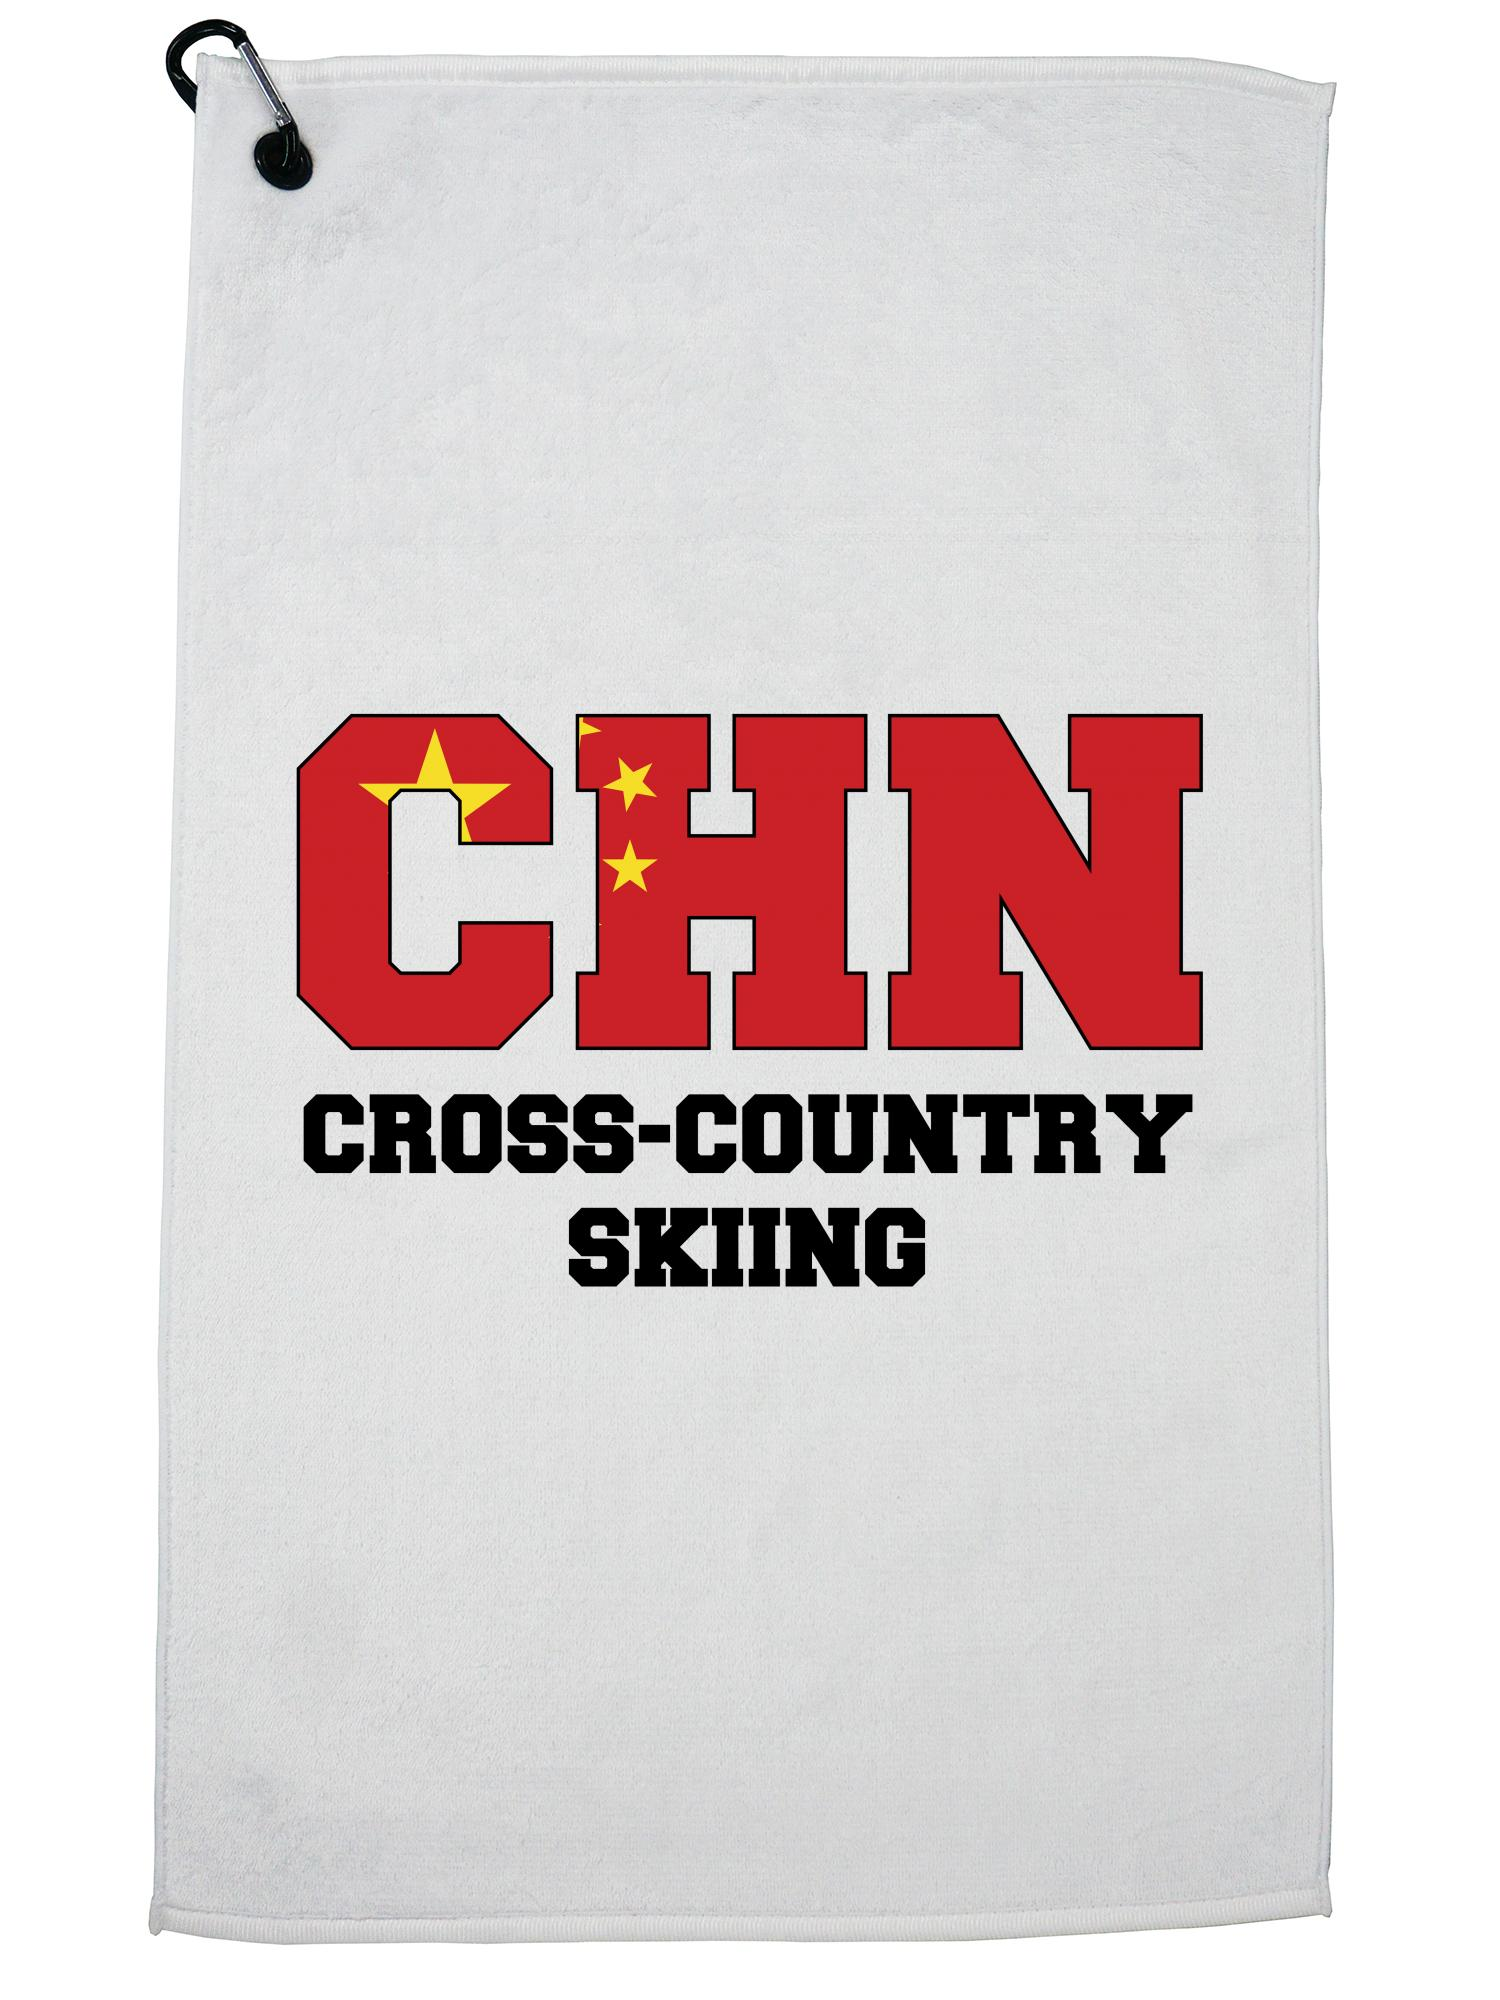 Chinese Cross-Country Skiing Winter Olympic CHN Flag Golf Towel with Carabiner Clip by Hollywood Thread